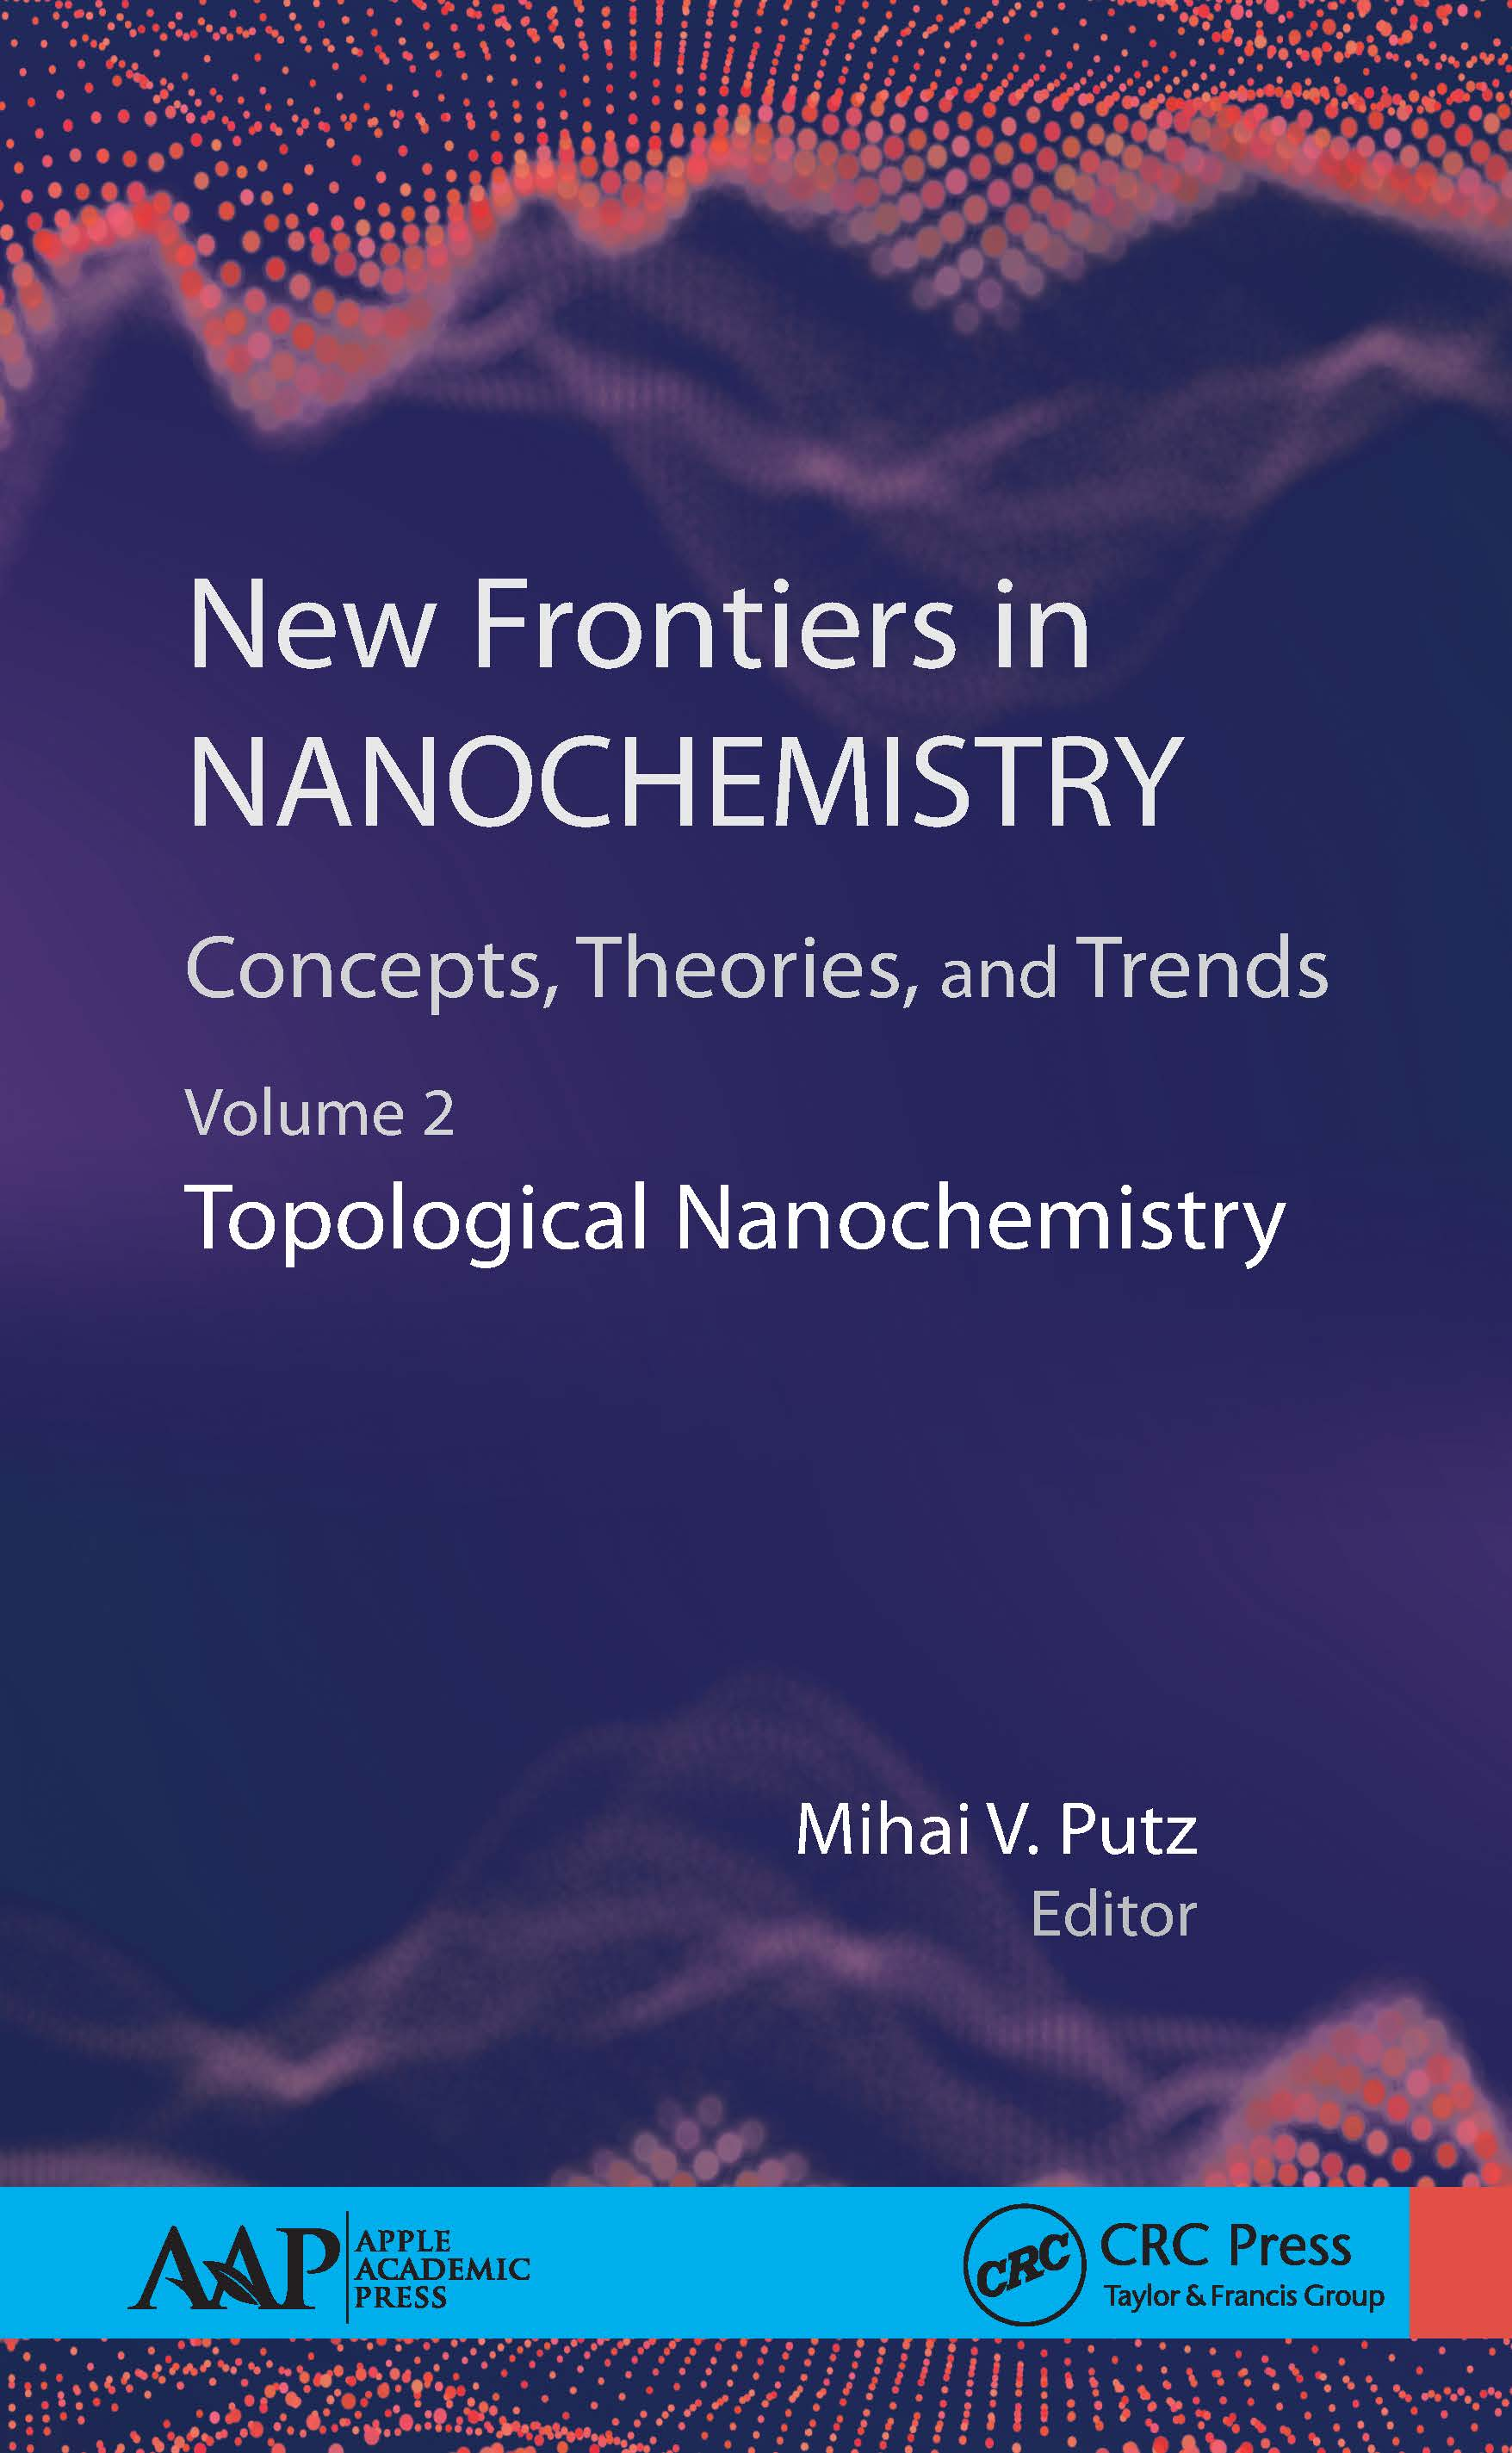 New Frontiers in Nanochemistry: Concepts, Theories, and Trends: Volume 2: Topological Nanochemistry book cover